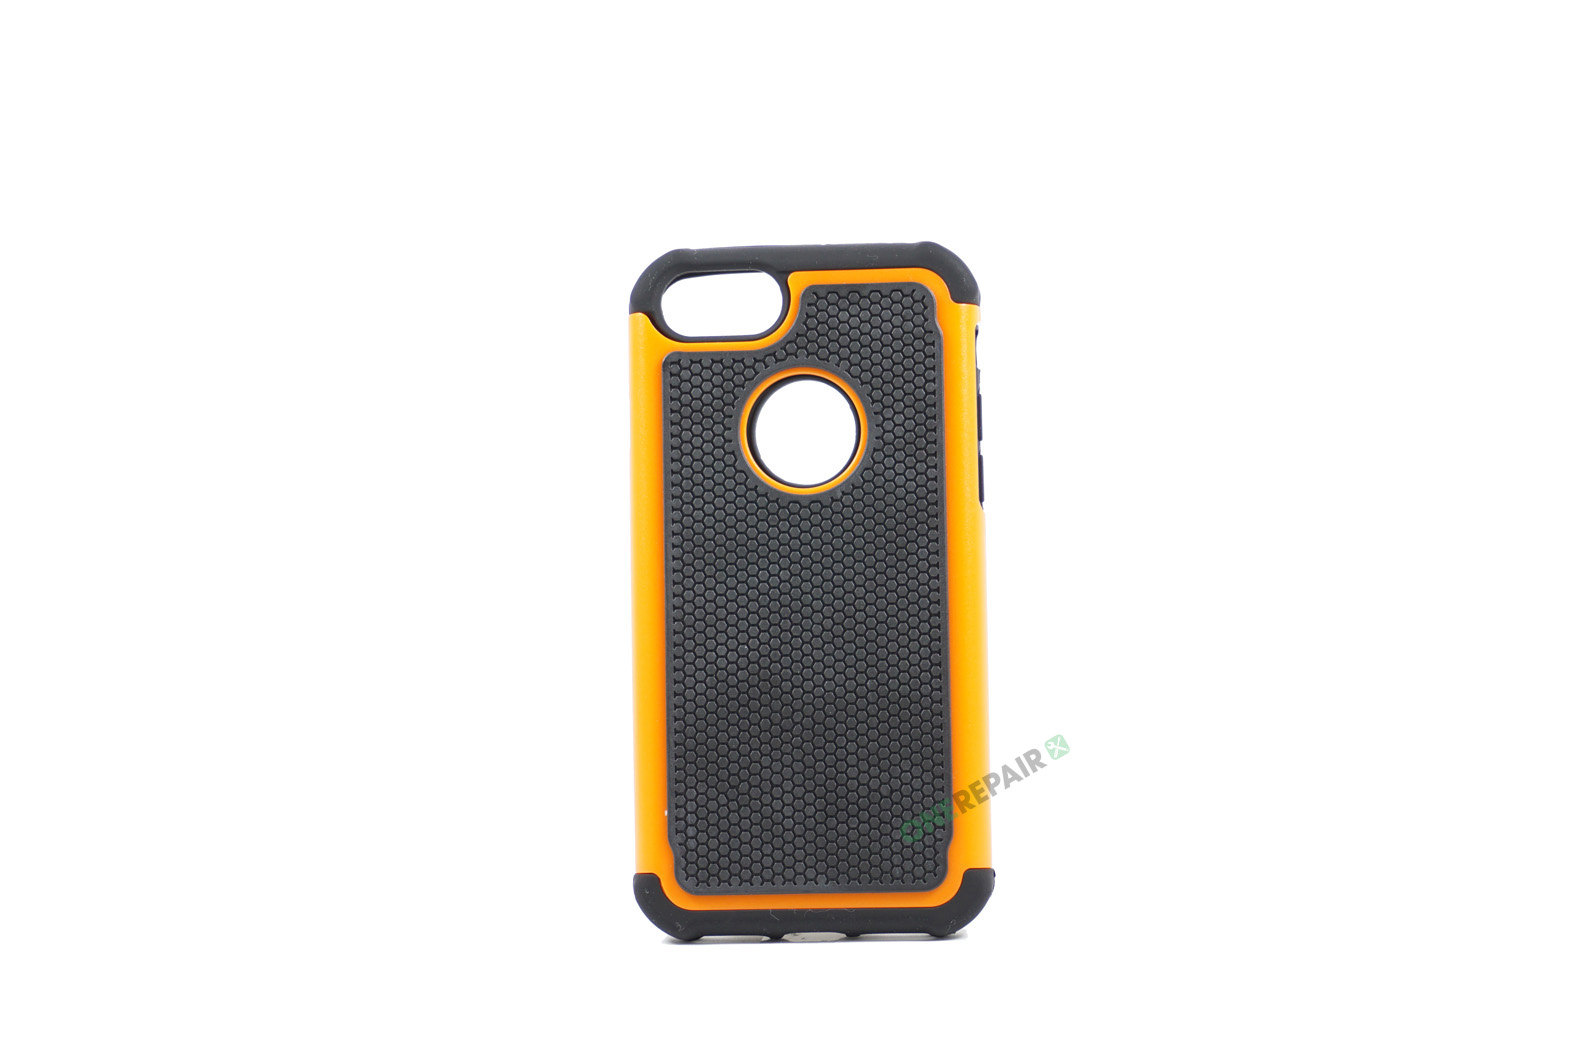 350786_iPhone_7_8_Haandvaerkercover_Hardcase_Cover_Orange_OneRepair_WM_00001